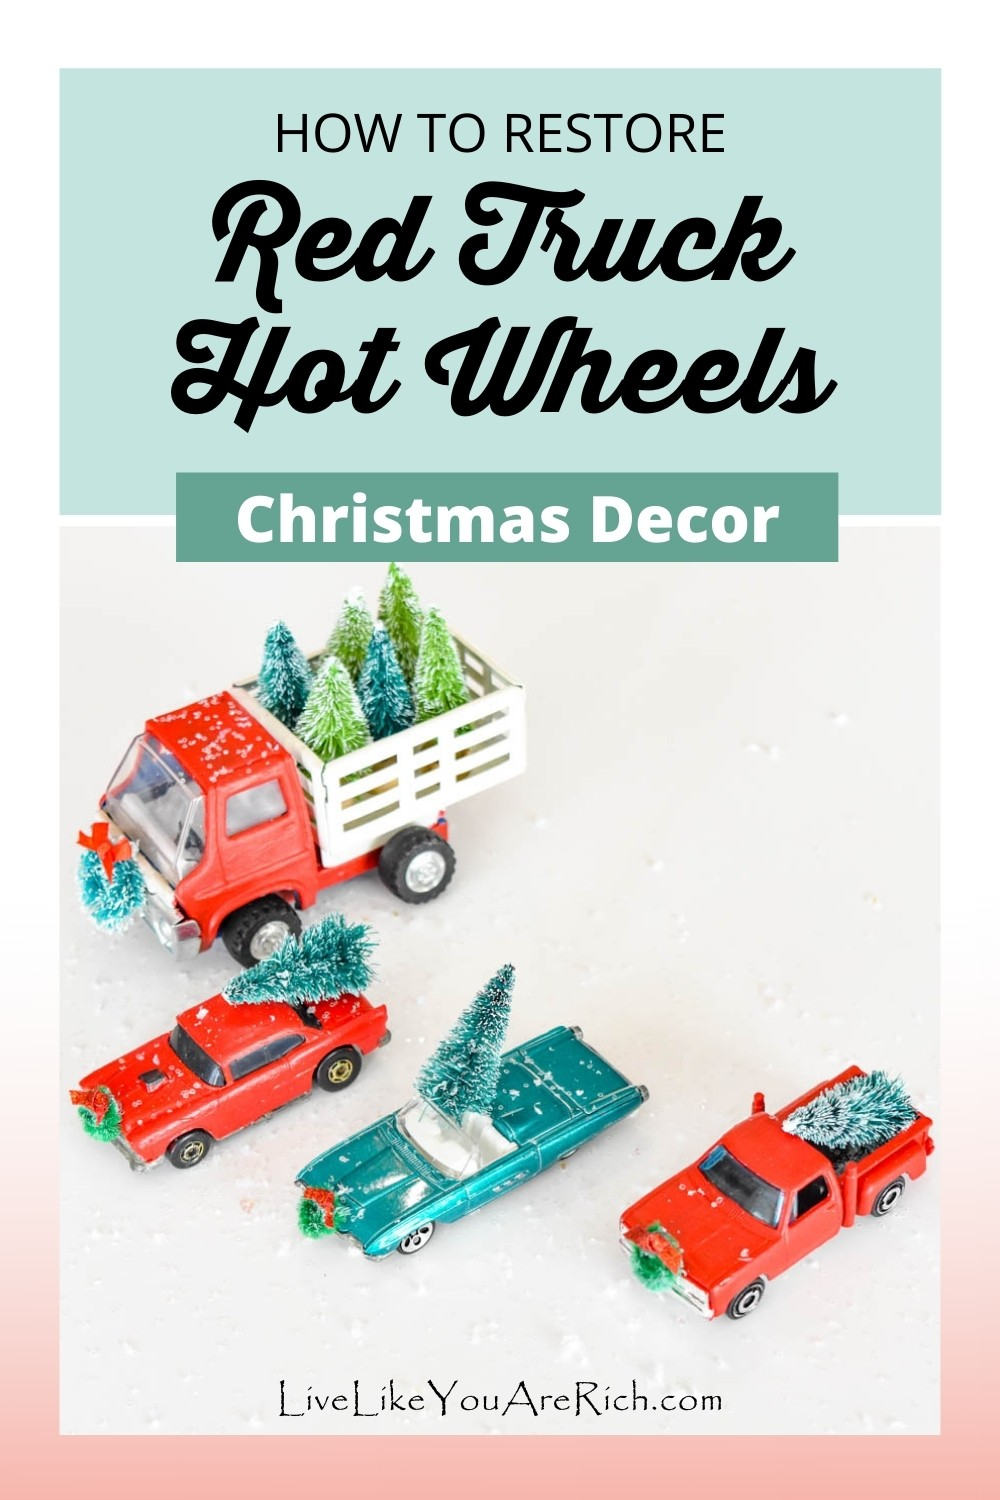 """This Christmas red truck hot wheels restoration craft is fun, inexpensive and quick. Plus, they make really cute decorations when finished. I don't always decorate with """"trendy"""" decorations. However, I couldn't help but decorate in the Red Truck Christmas theme this year. It is the right balance of vintage and cutesy, fun and classy."""